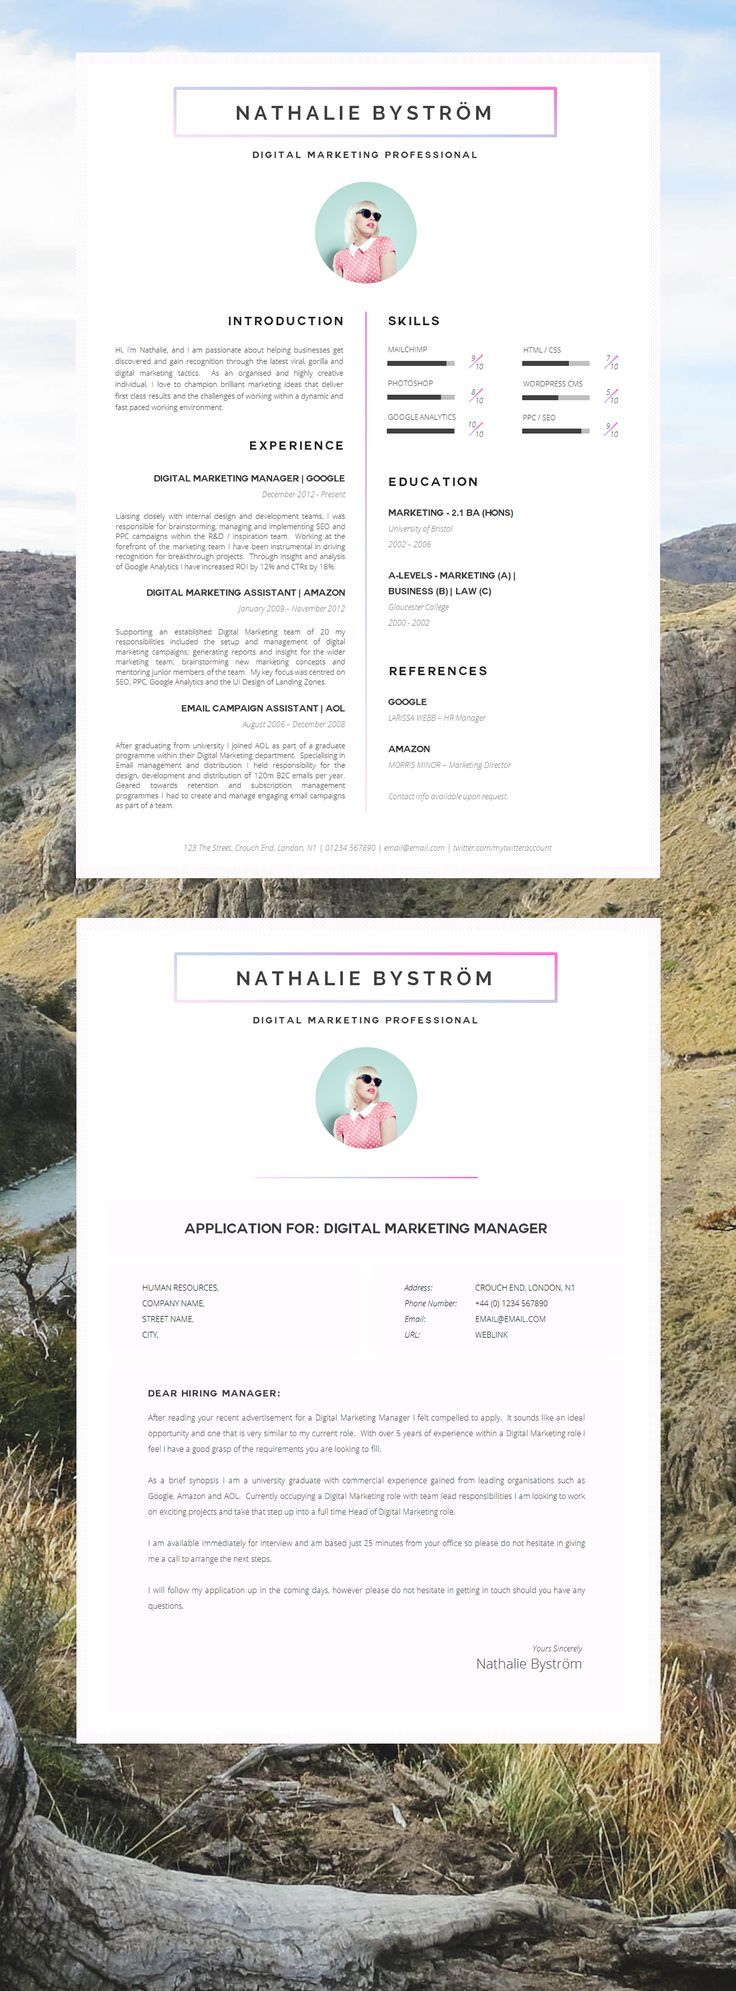 Creative CV Template with FREE advice and matching cover letter. #Resume #CV